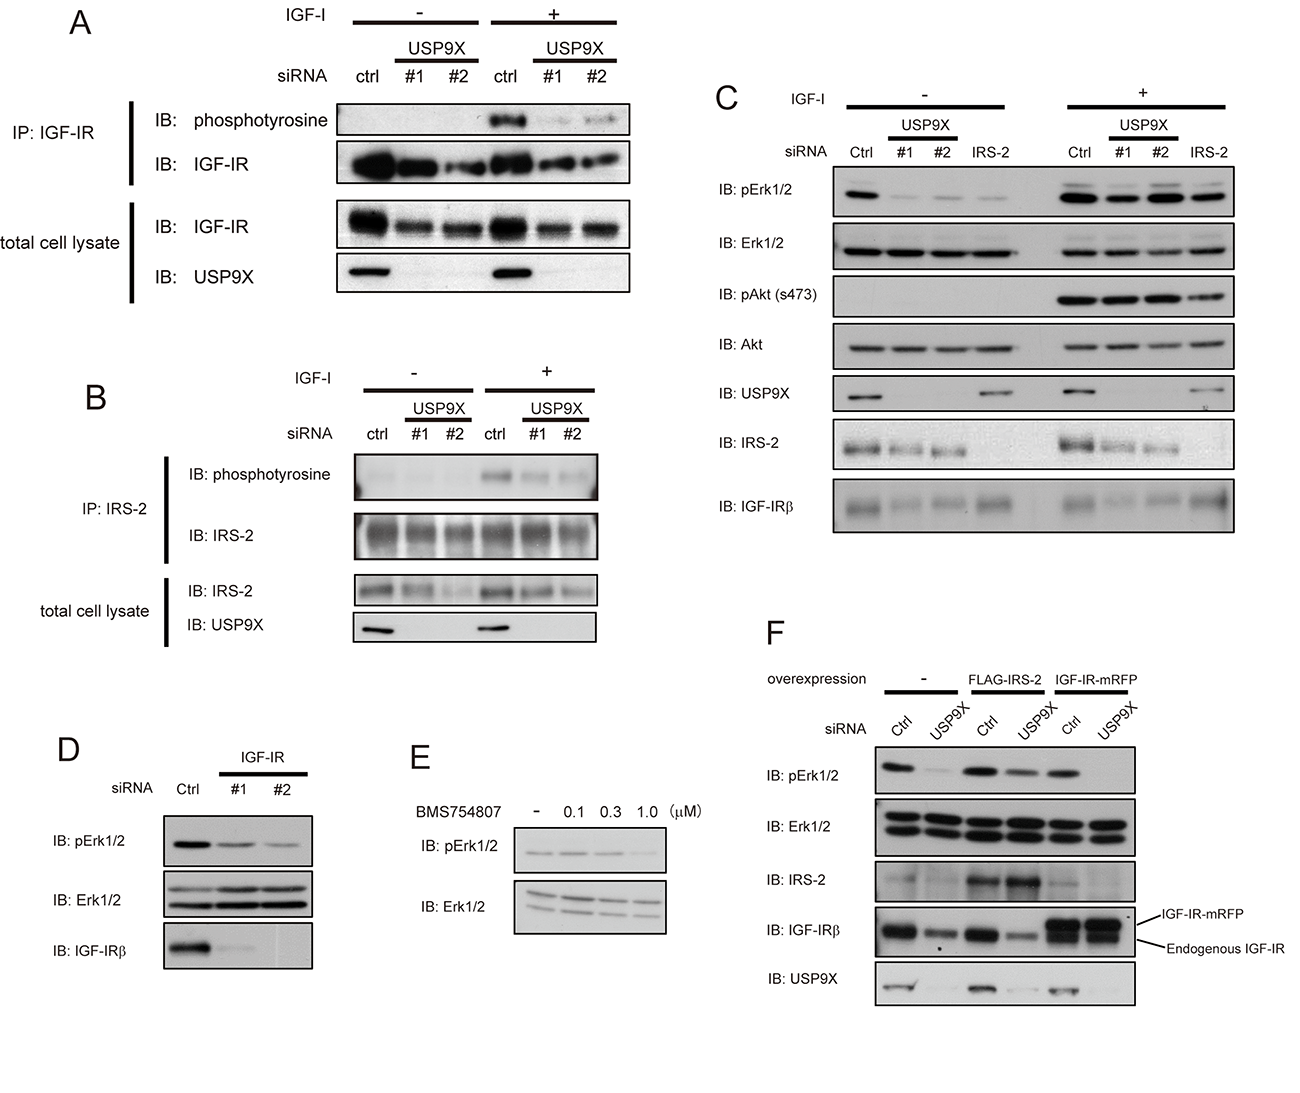 USP9X maintains the activation of Erk pathway by stabilizing IRS-2.